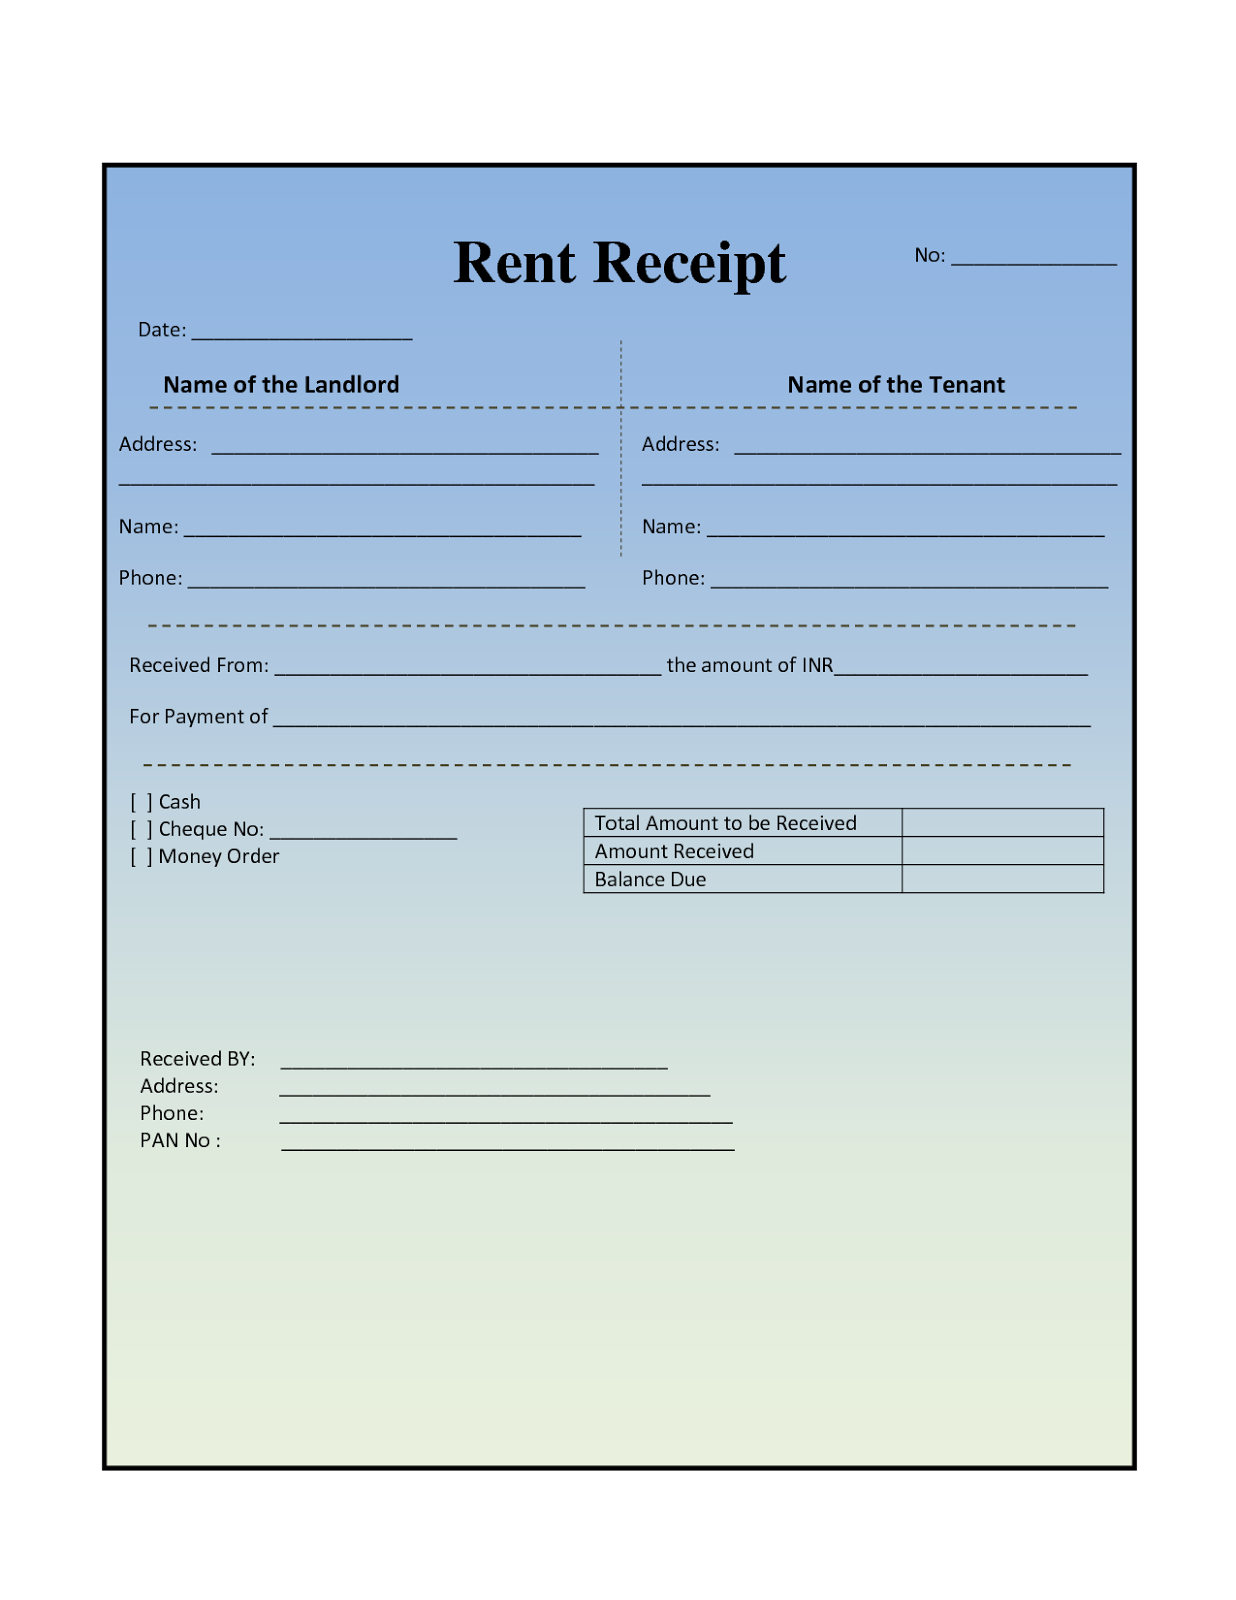 House Rental Invoice Template In Excel Format House Rental Invoice